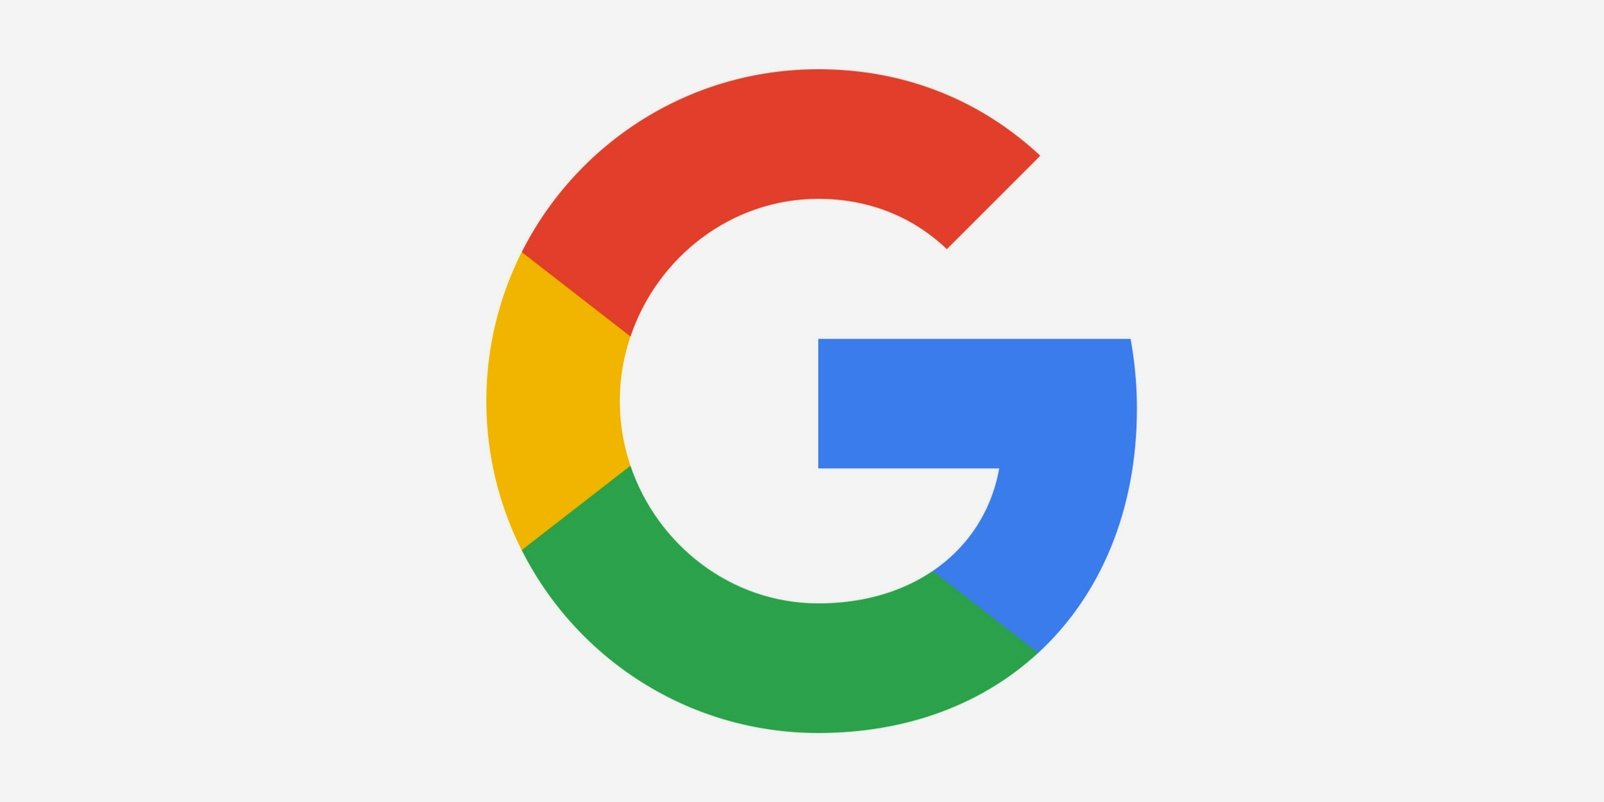 Google Chrome 89.0.4389.82 Crack with License Key Free Download Latest 2021 featured